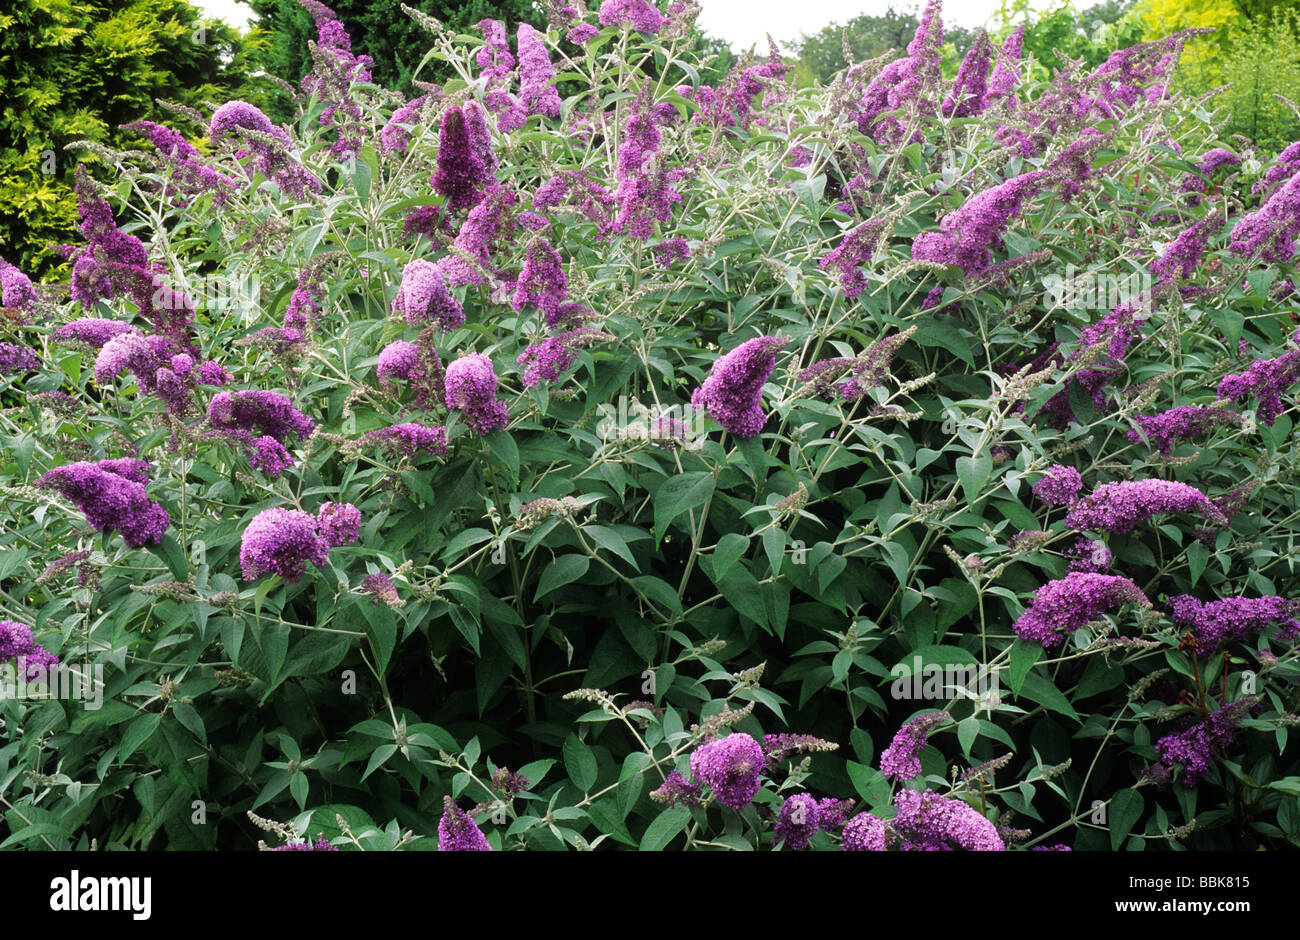 Buddleja 39 lochinch 39 purple flower flowers buddlejas buddleia stock photo royalty free image - Flowers planted may complete garden ...